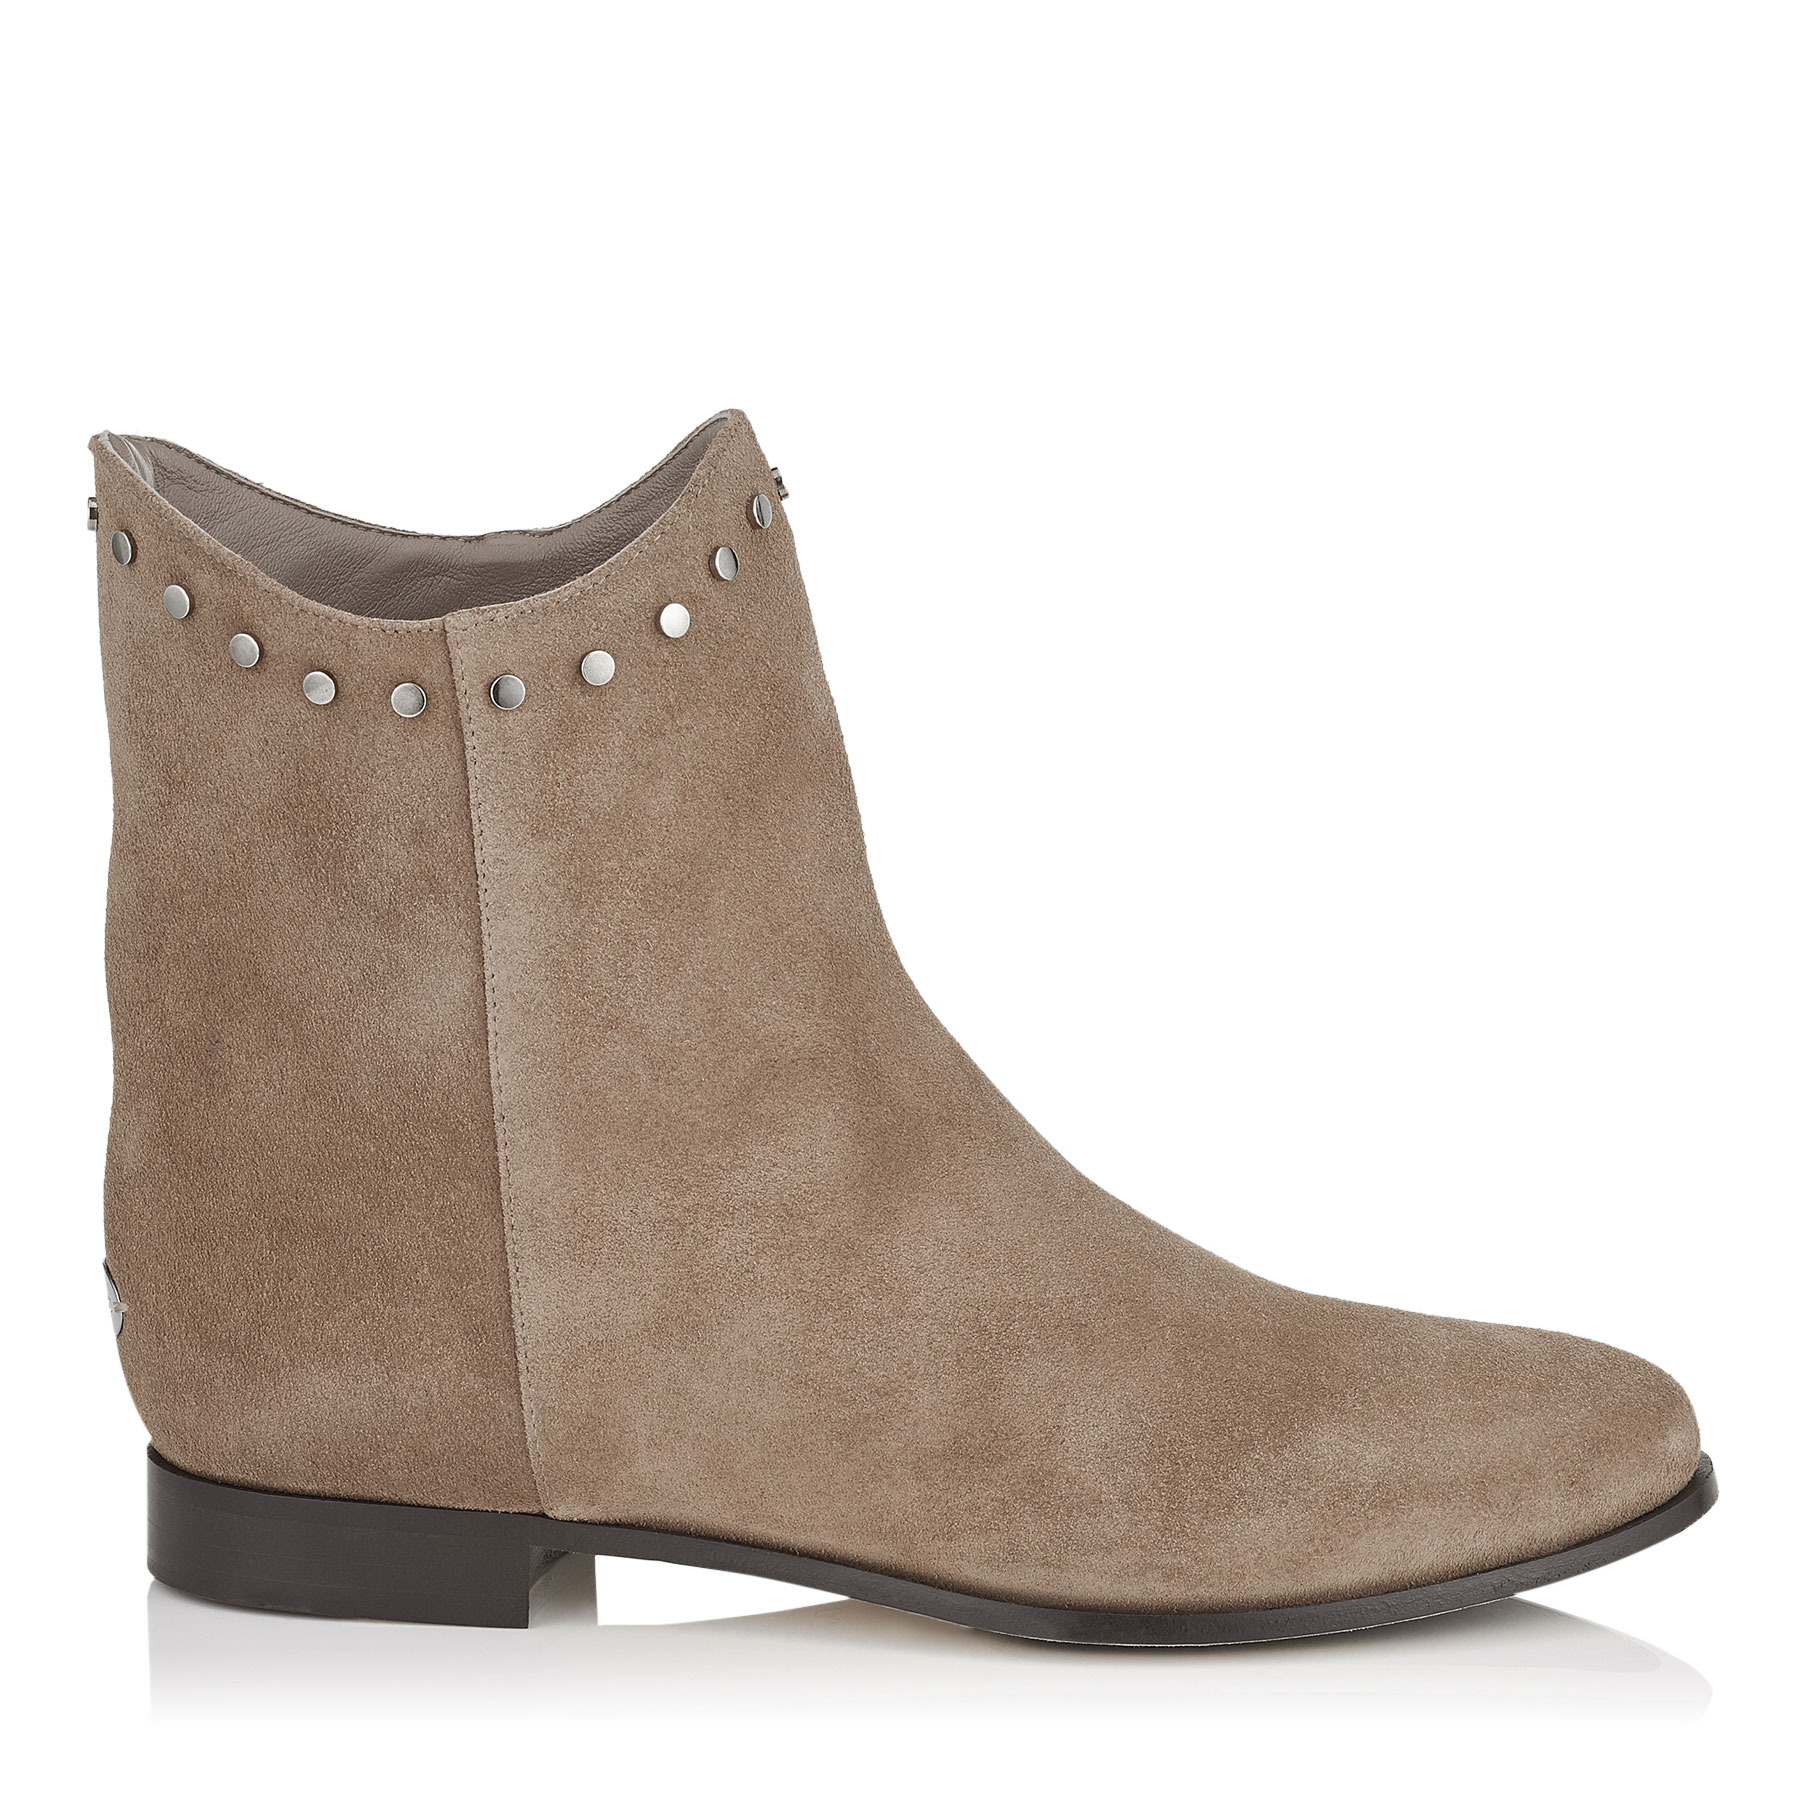 MARCO FLAT Light Mocha Suede Ankle Boots